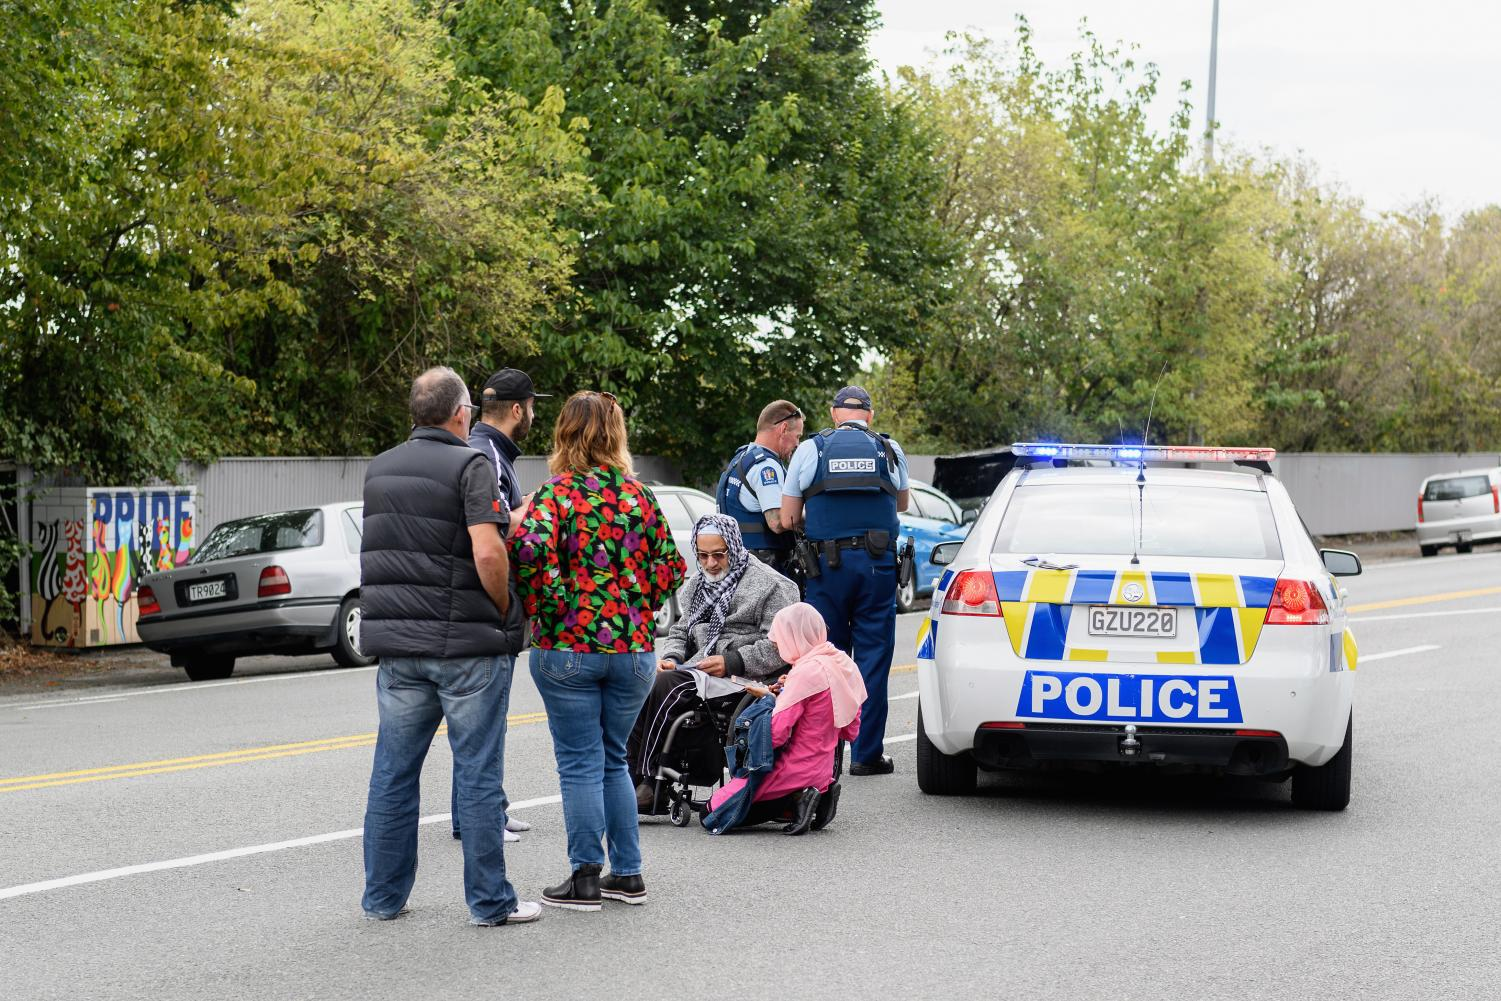 Members of the public react in front of the Masjd Al Noor Mosque as they fear for their relatives on March 15, 2019 in Christchurch, New Zealand. 49 people have been confirmed dead and more than 20 are injured following attacks at two mosques in Christchurch.